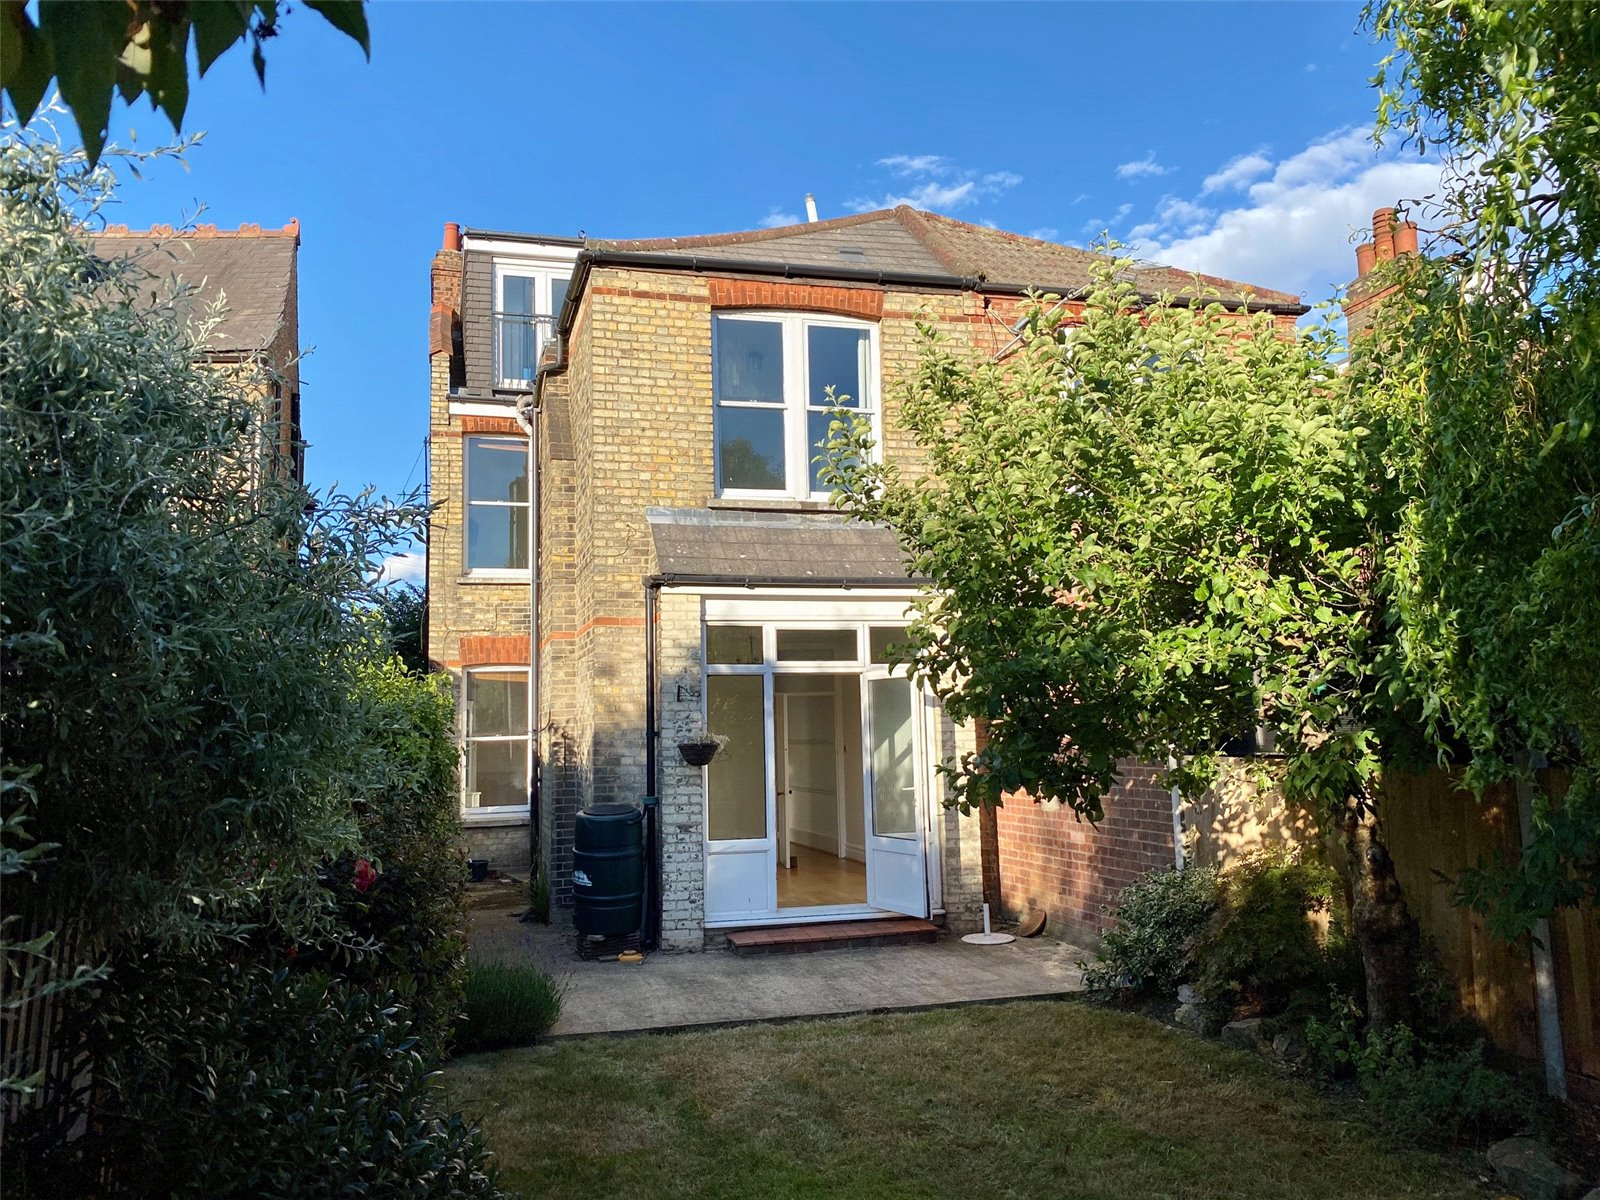 4 bed house for sale in Finchley, N3 2AR 3